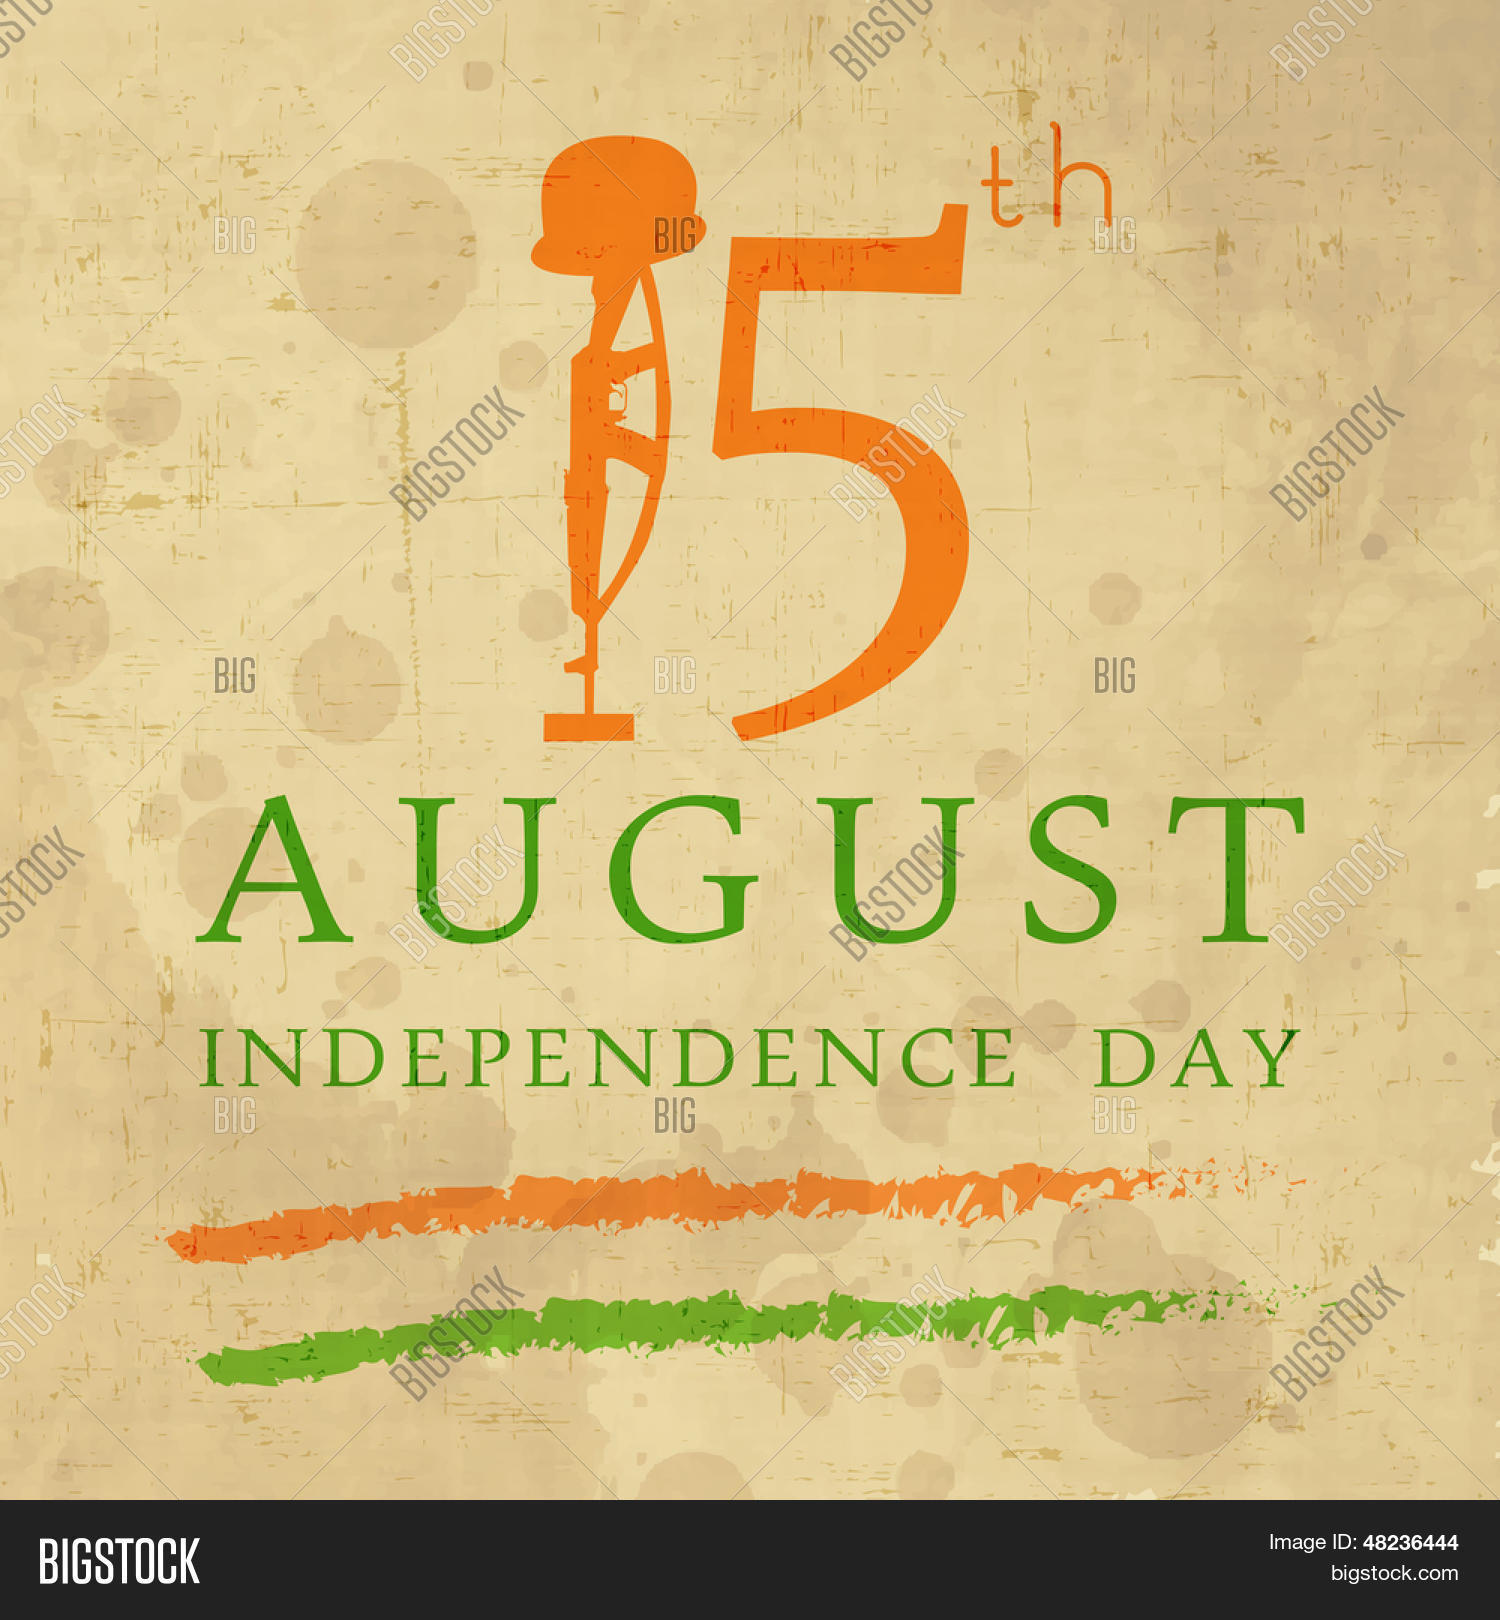 Vintage background vector photo free trial bigstock vintage background for indian independence day with text 15 august and illustration of amar jawan jyoti thecheapjerseys Images